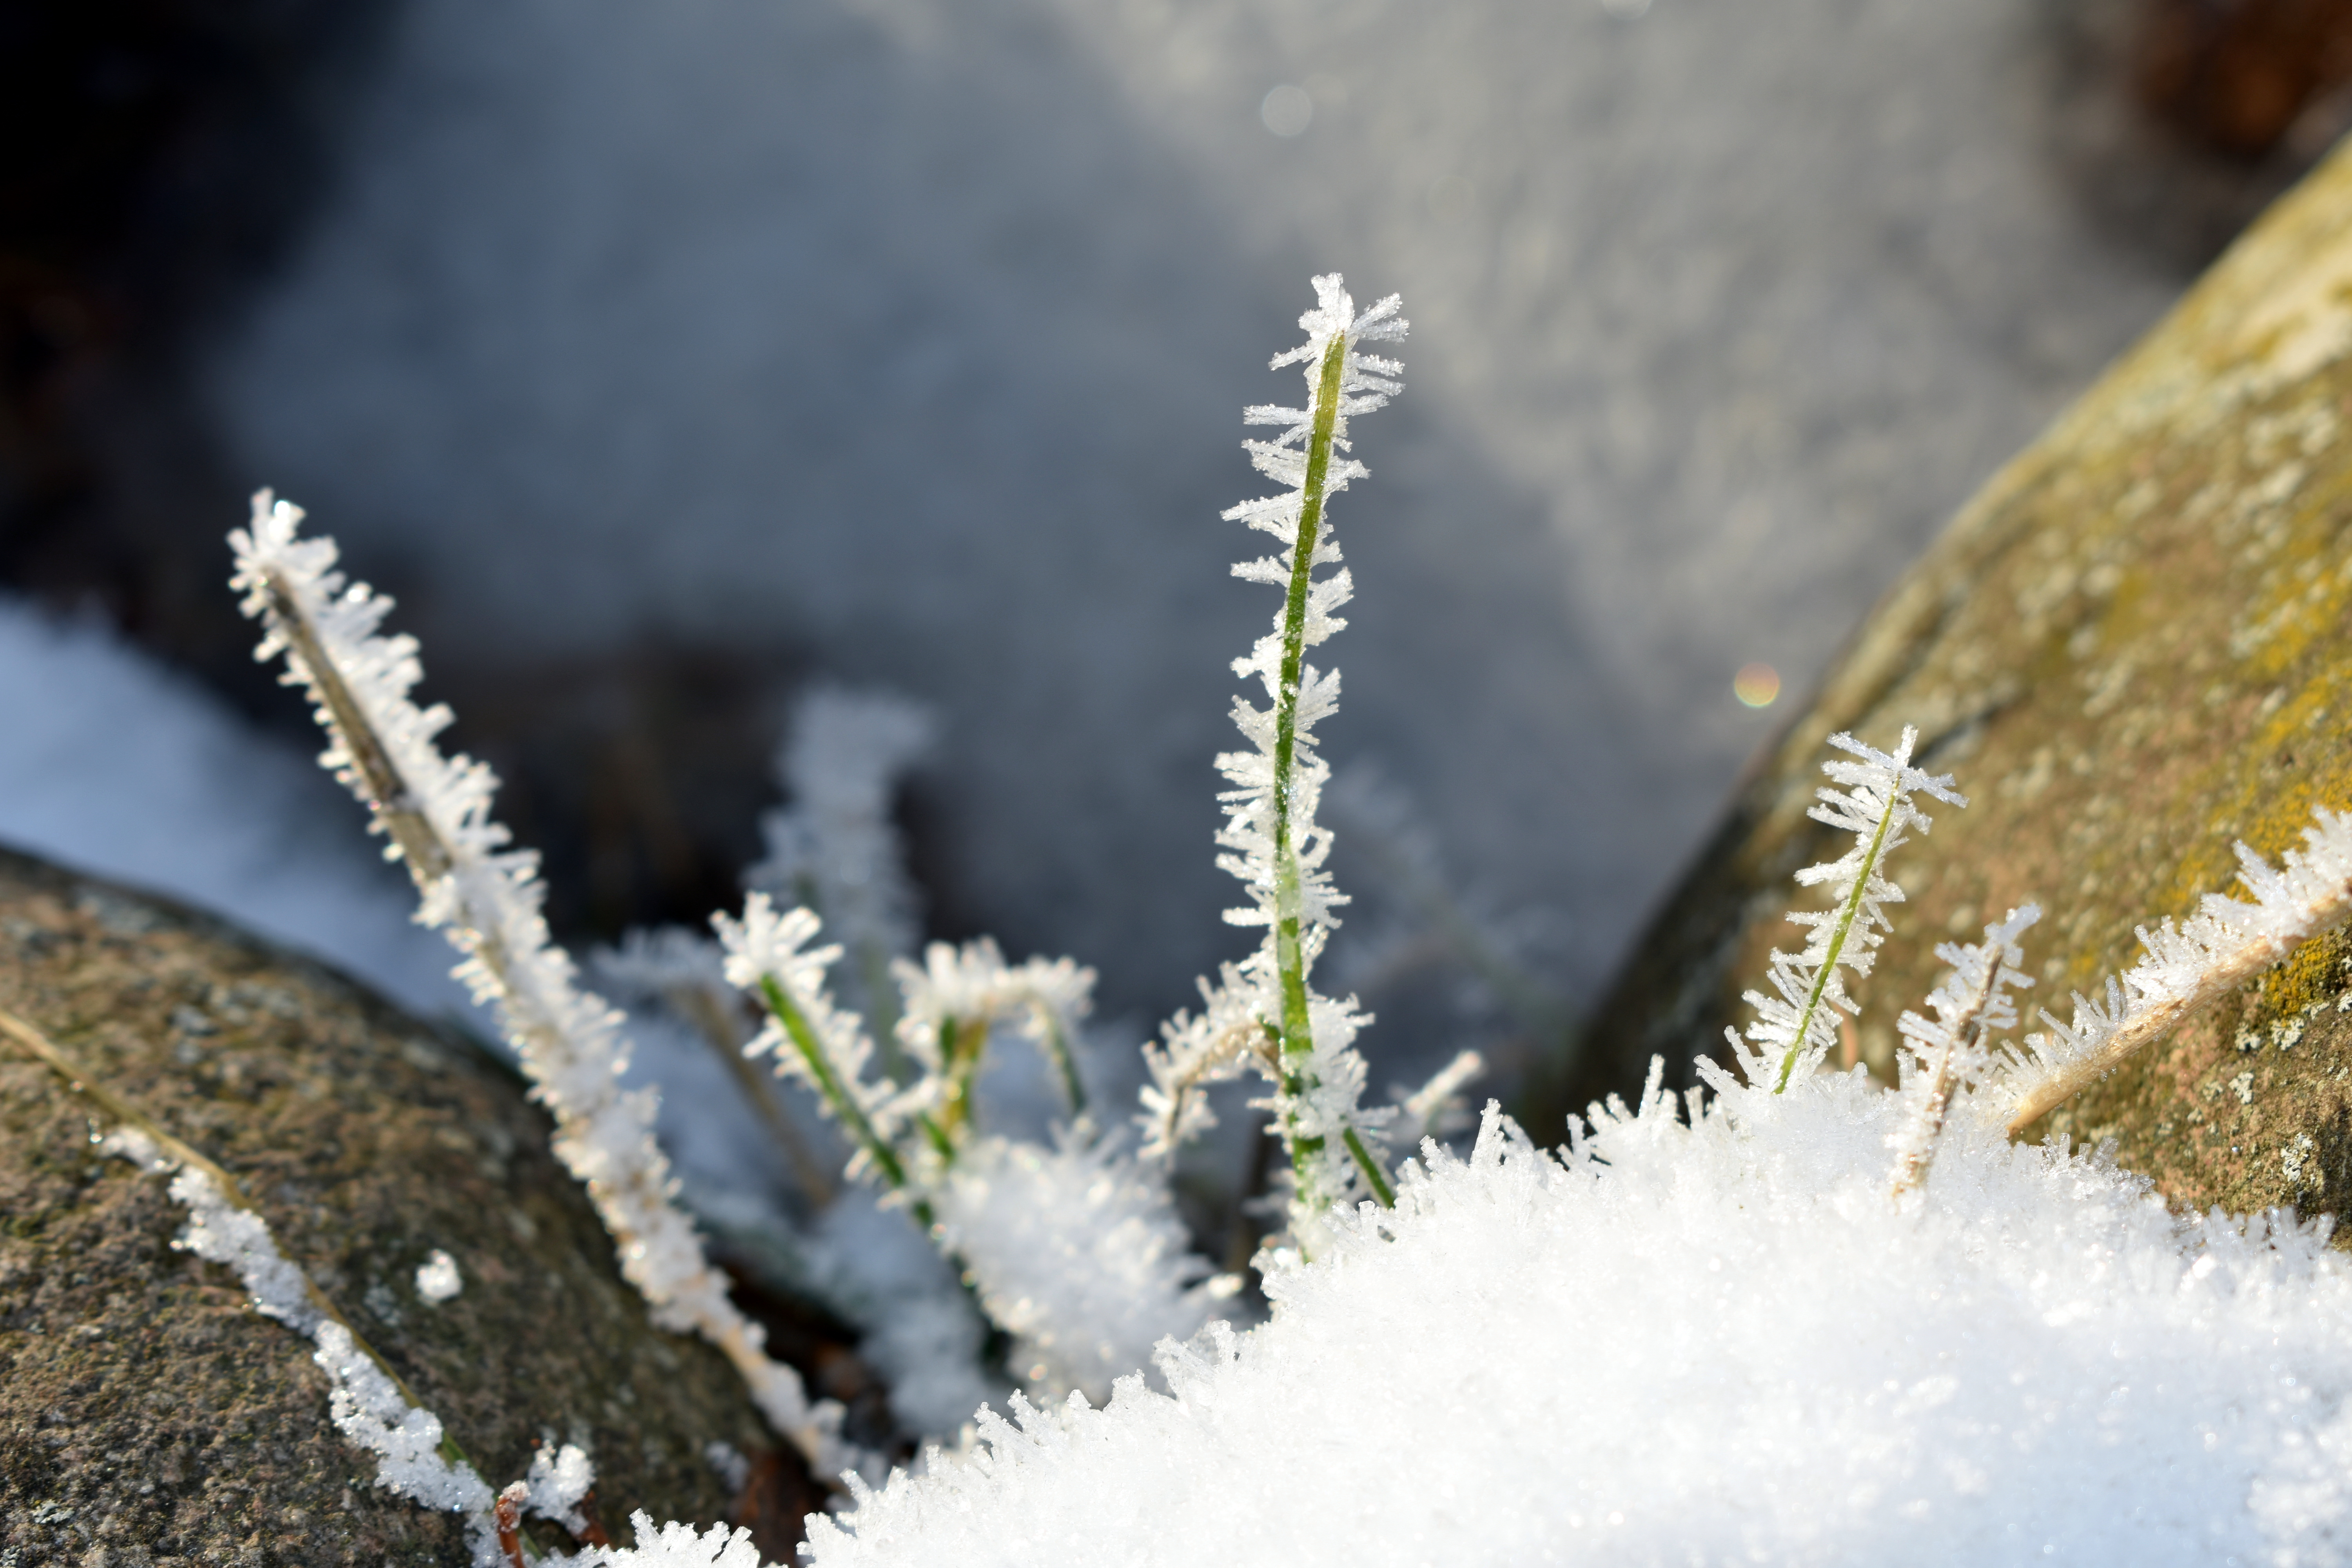 Ice, snow and winter in Finland